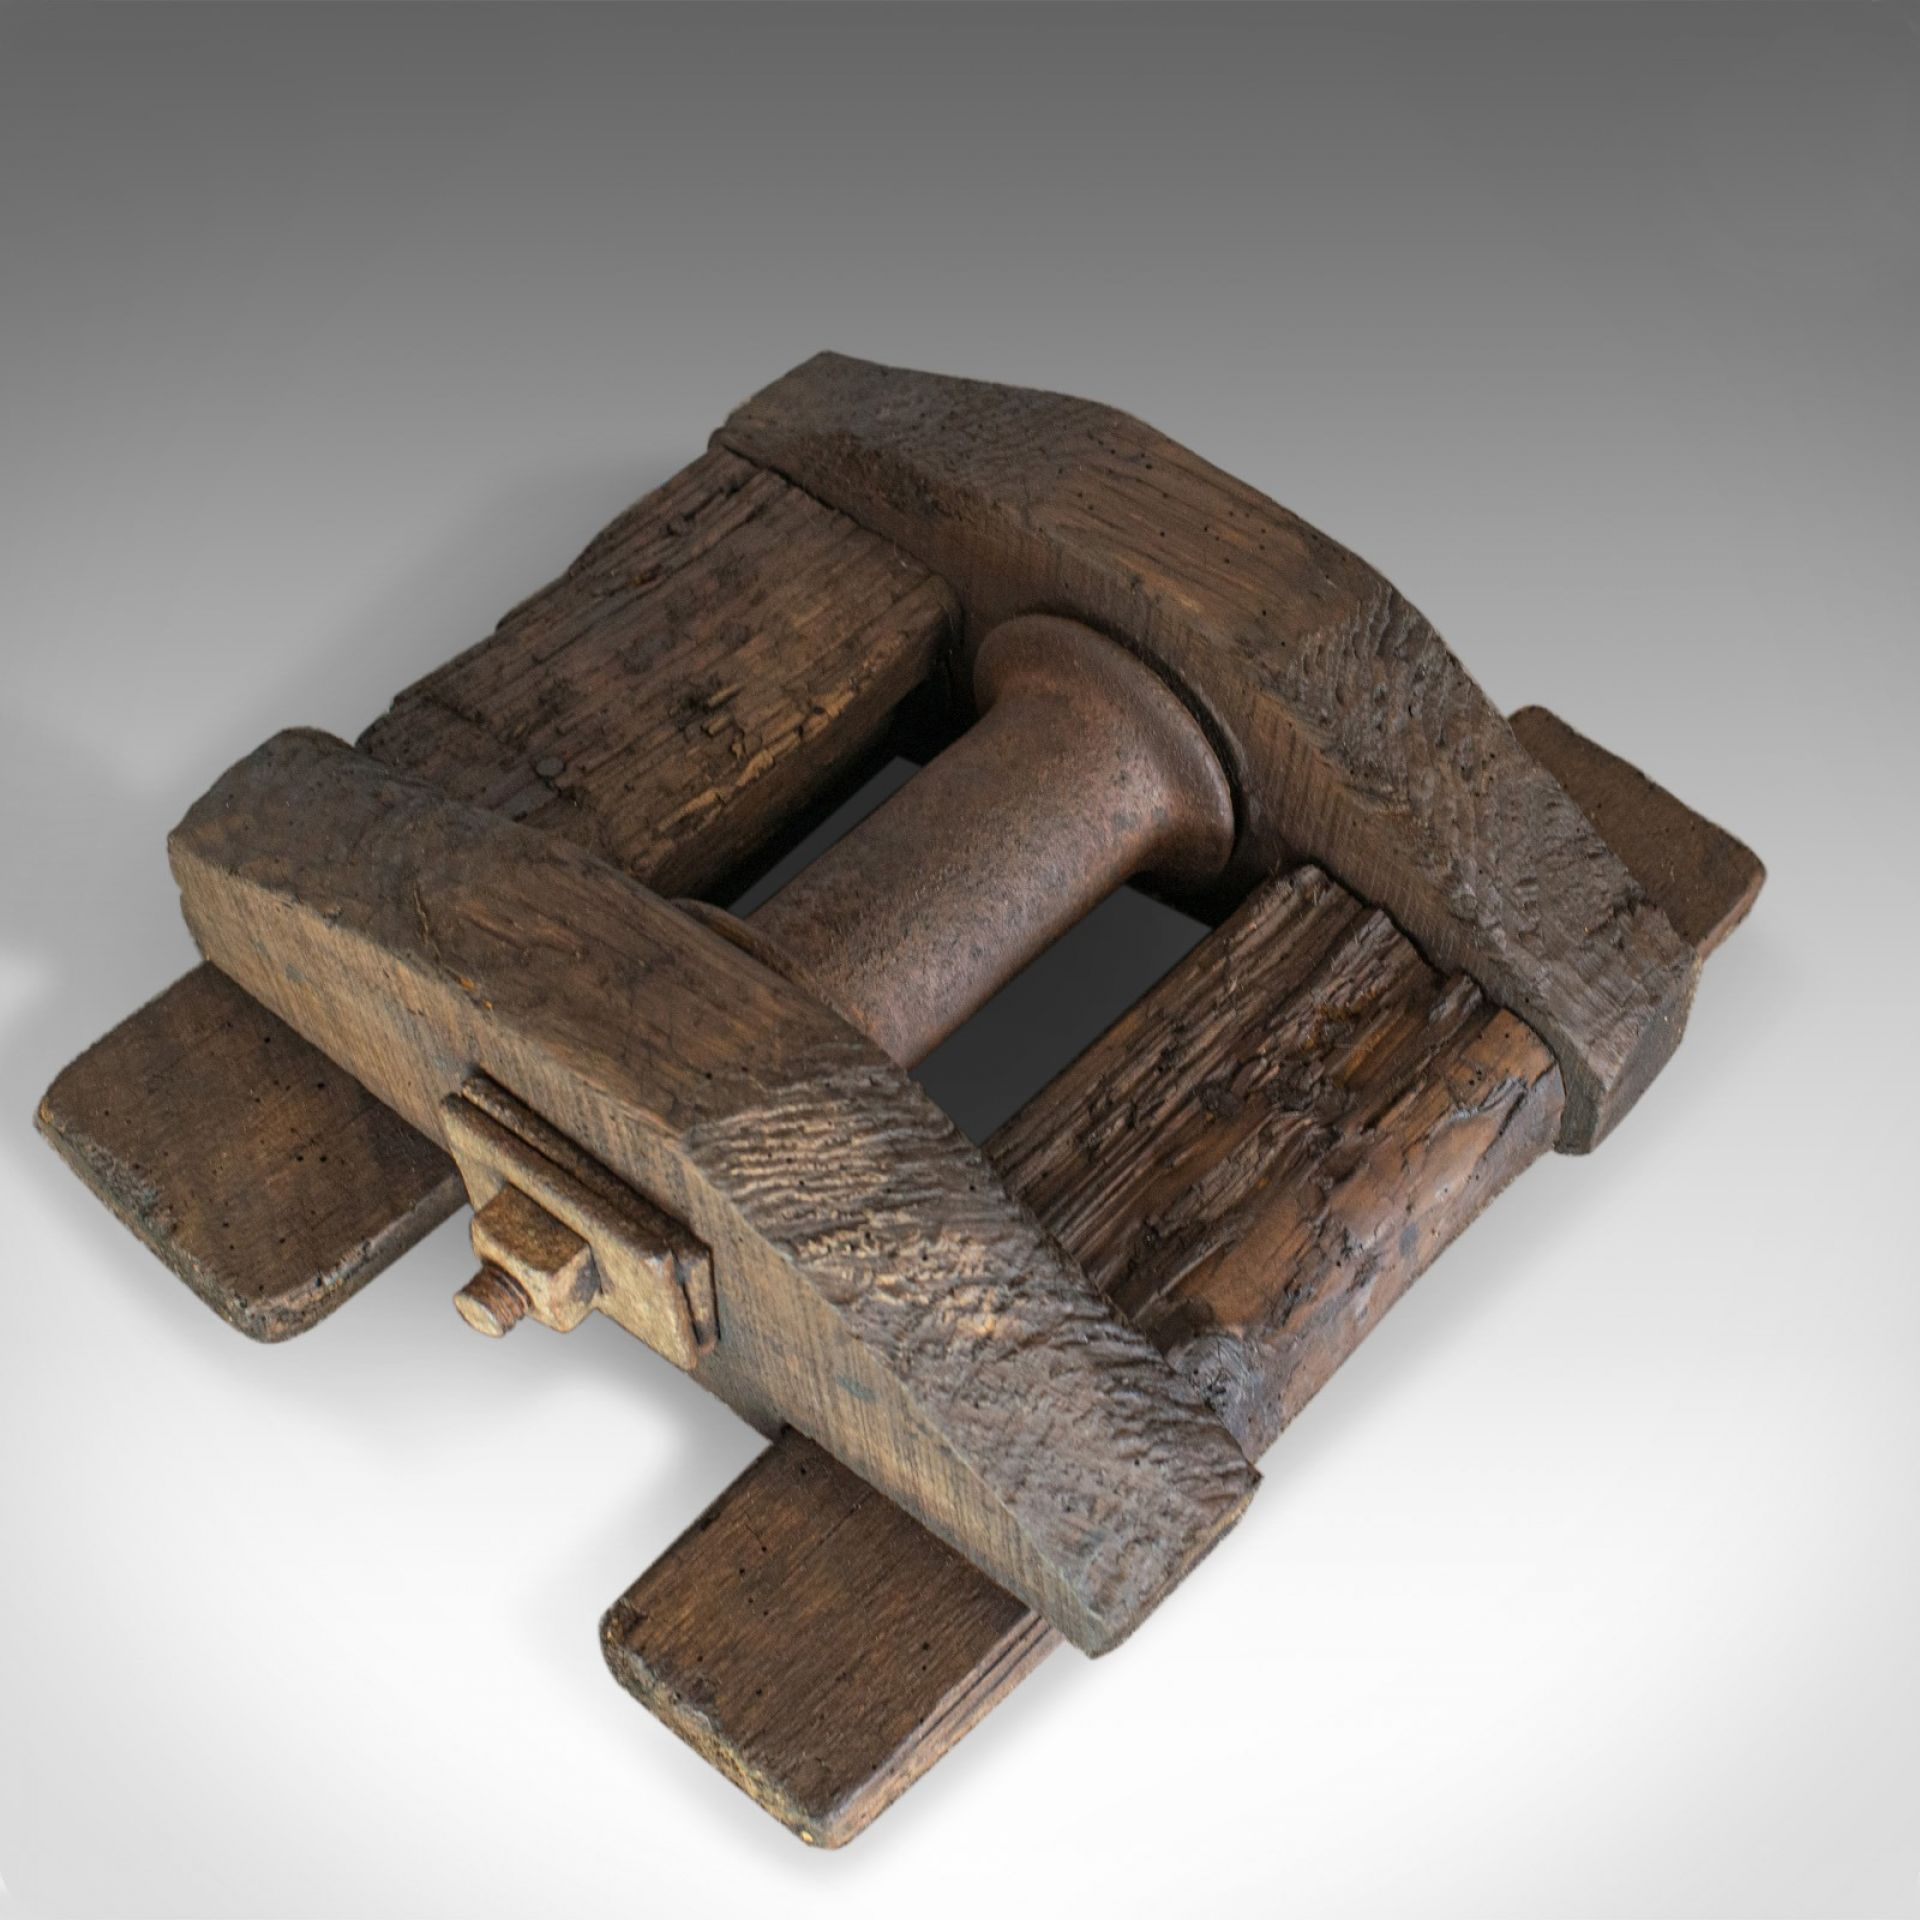 Antique Rope Pulley, English, Victorian, Rustic, Sleeper, Pine, Circa 1900